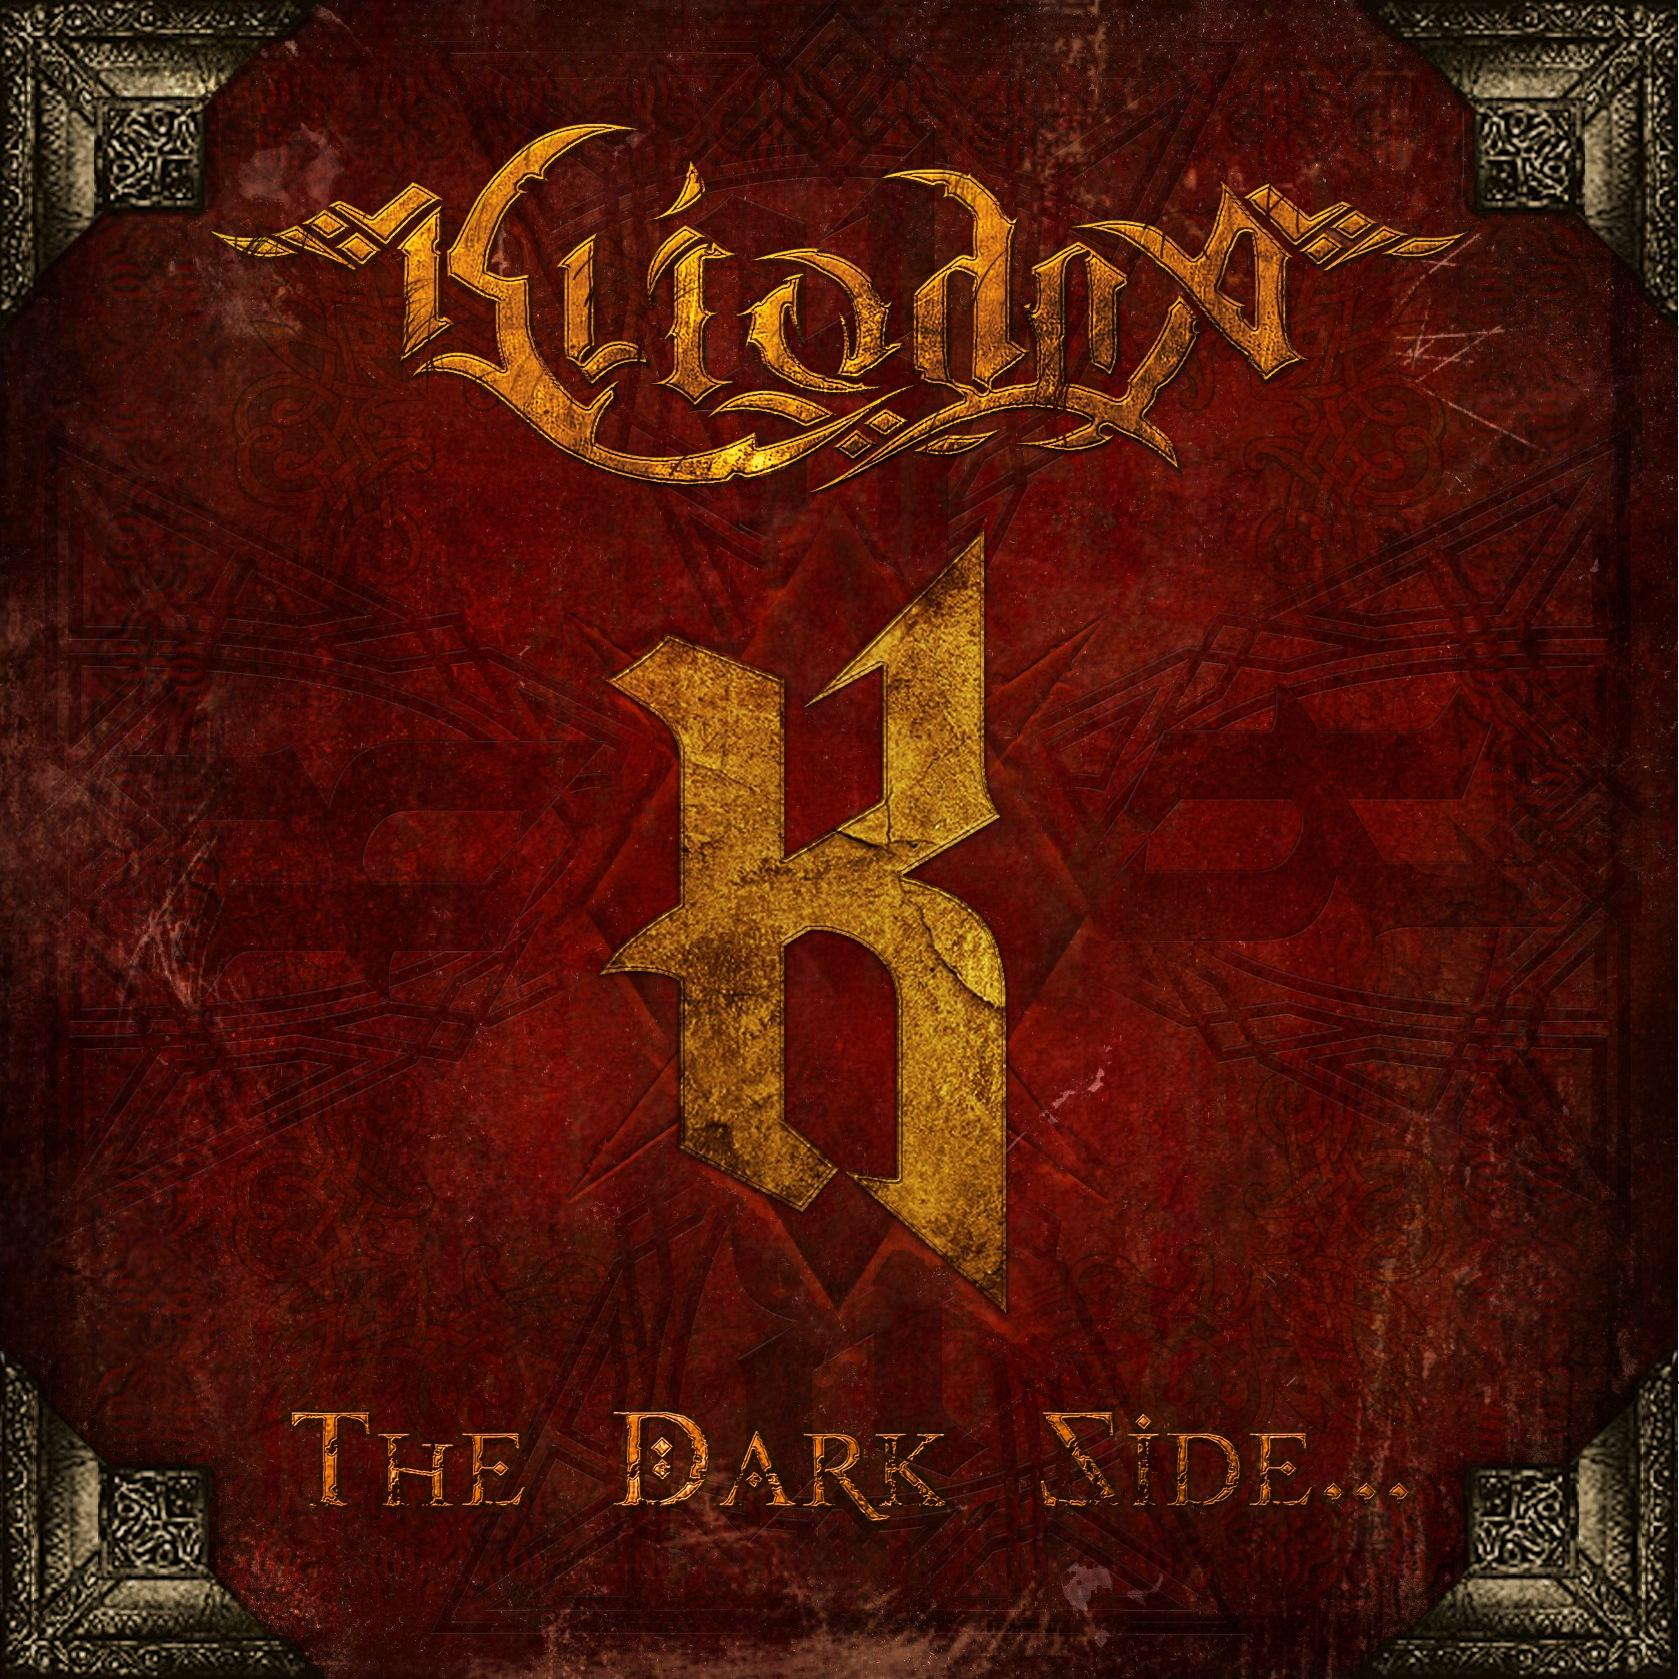 Kliodna - The Dark Side... (2016)